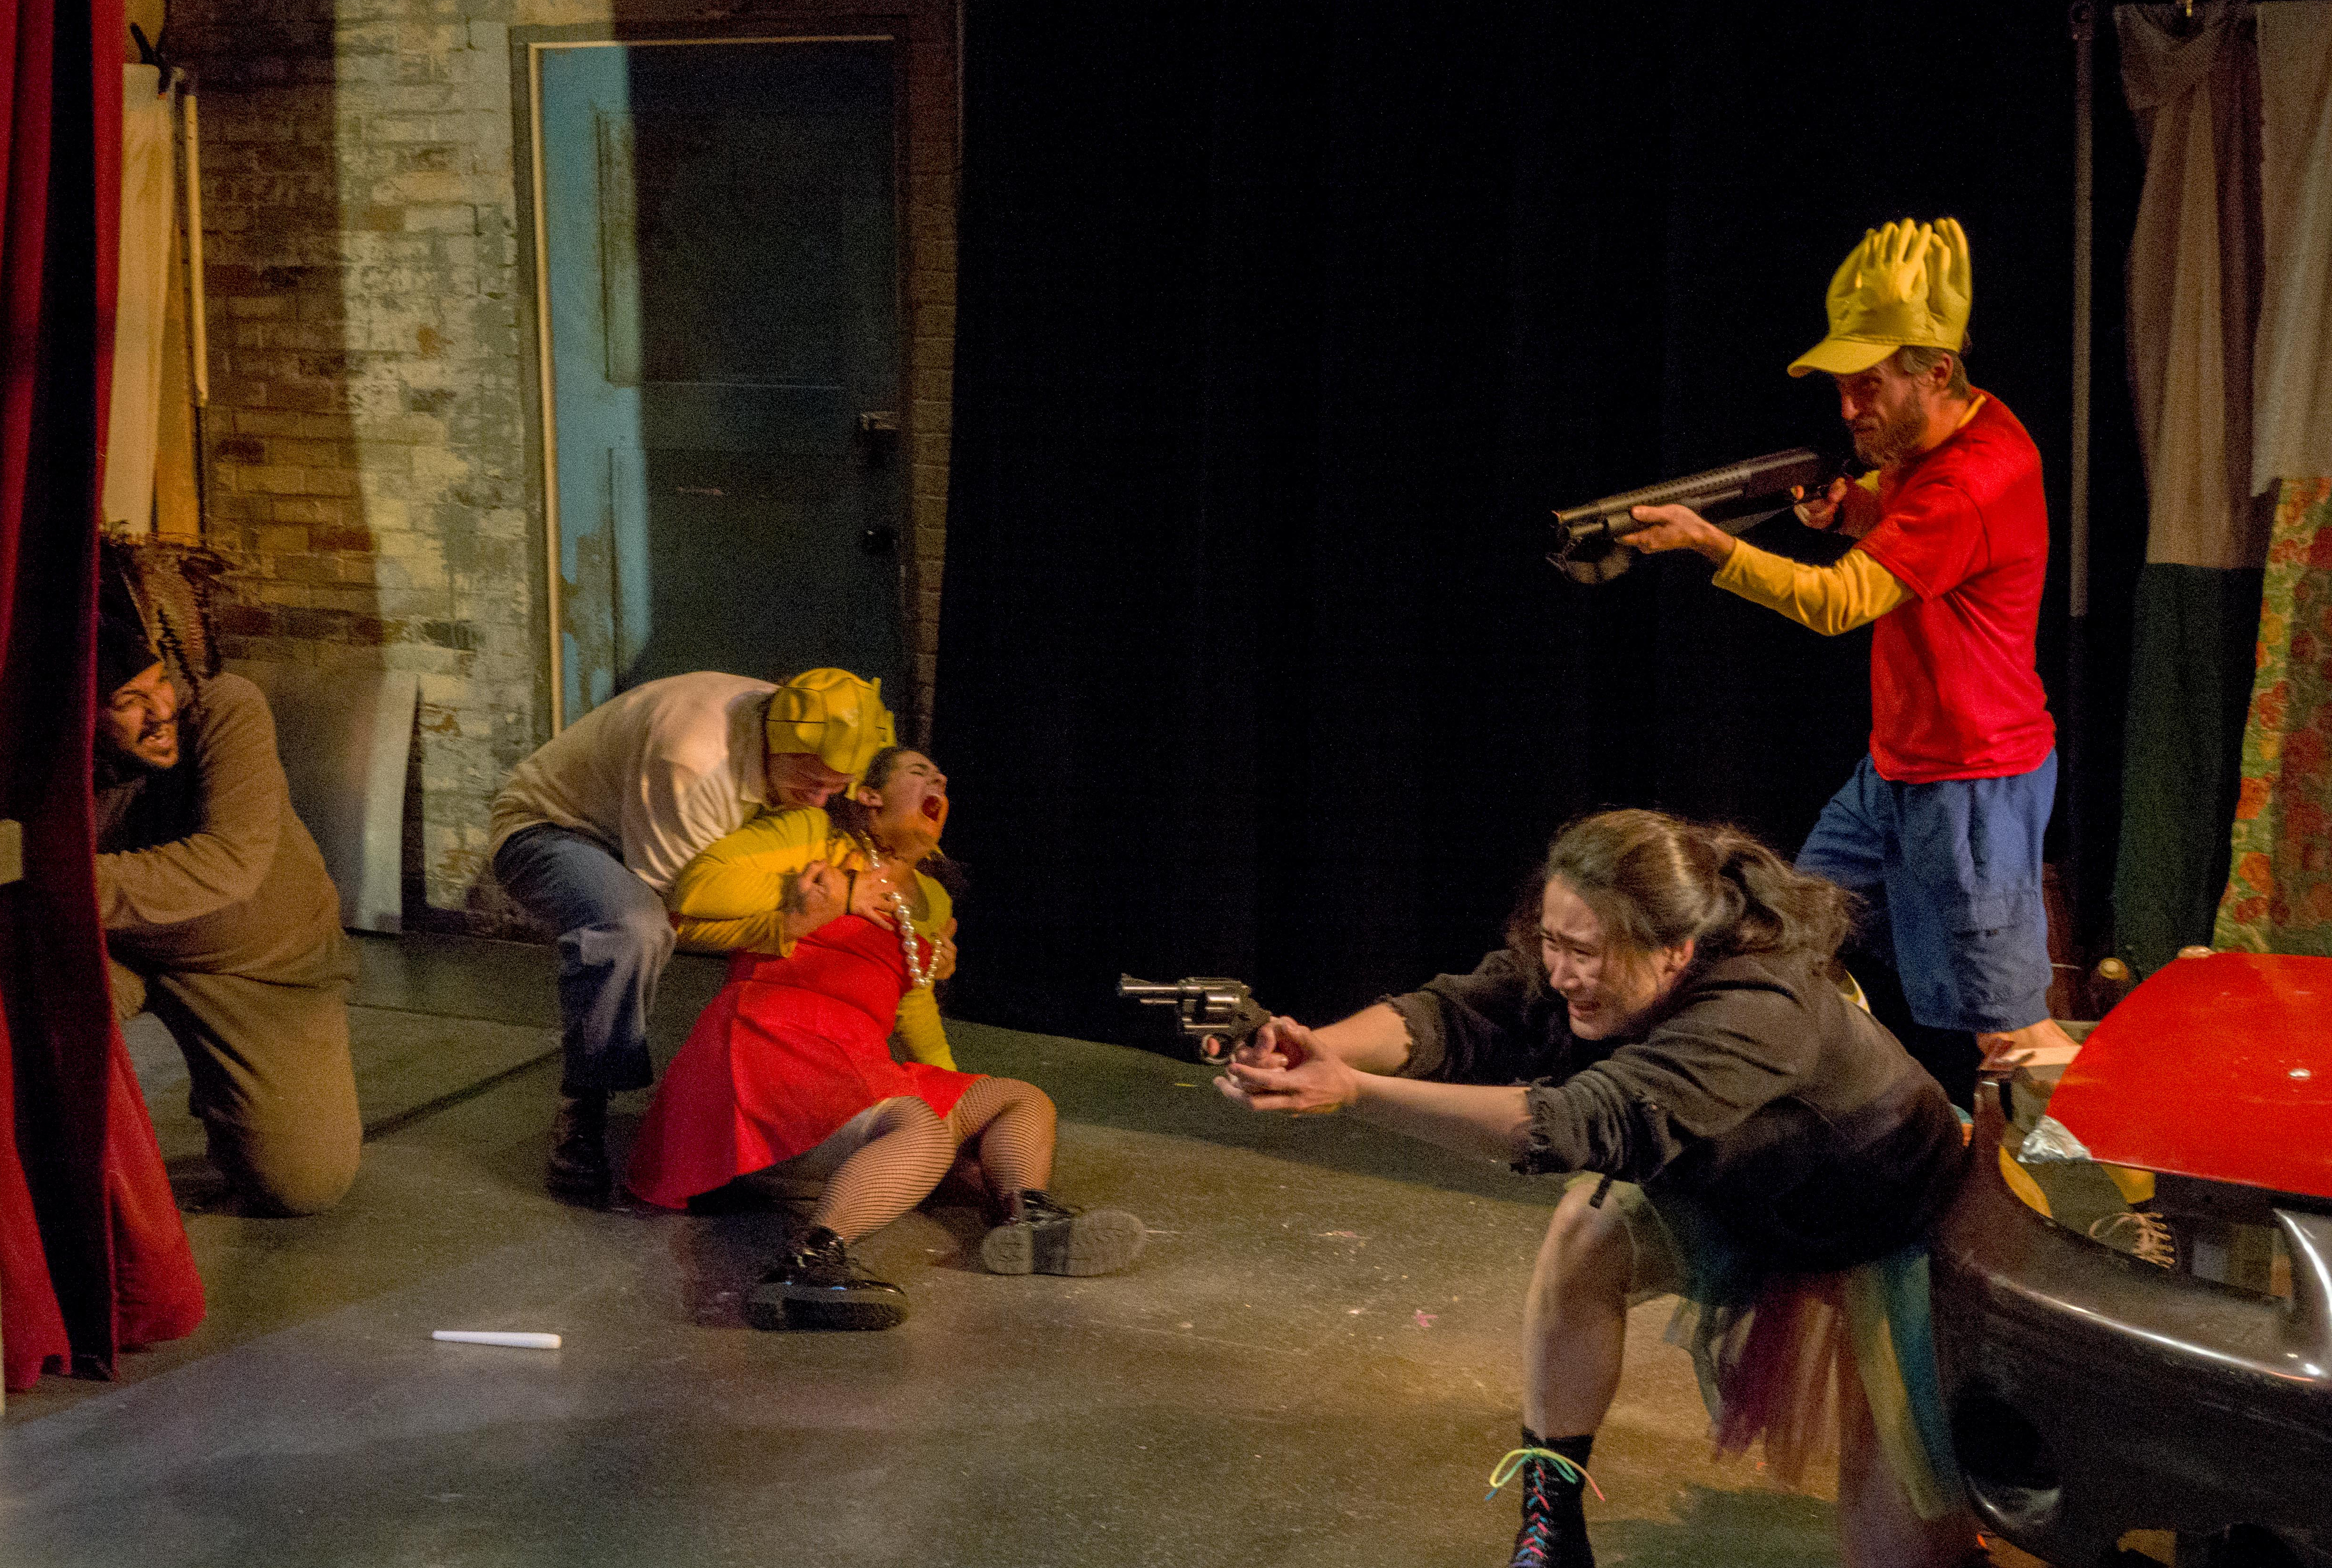 """The cast of Theater Wit's production of """"Mr. Burns, a post electric play"""" has been trained in the safe use of the """"many, many guns"""" utilized in the production."""